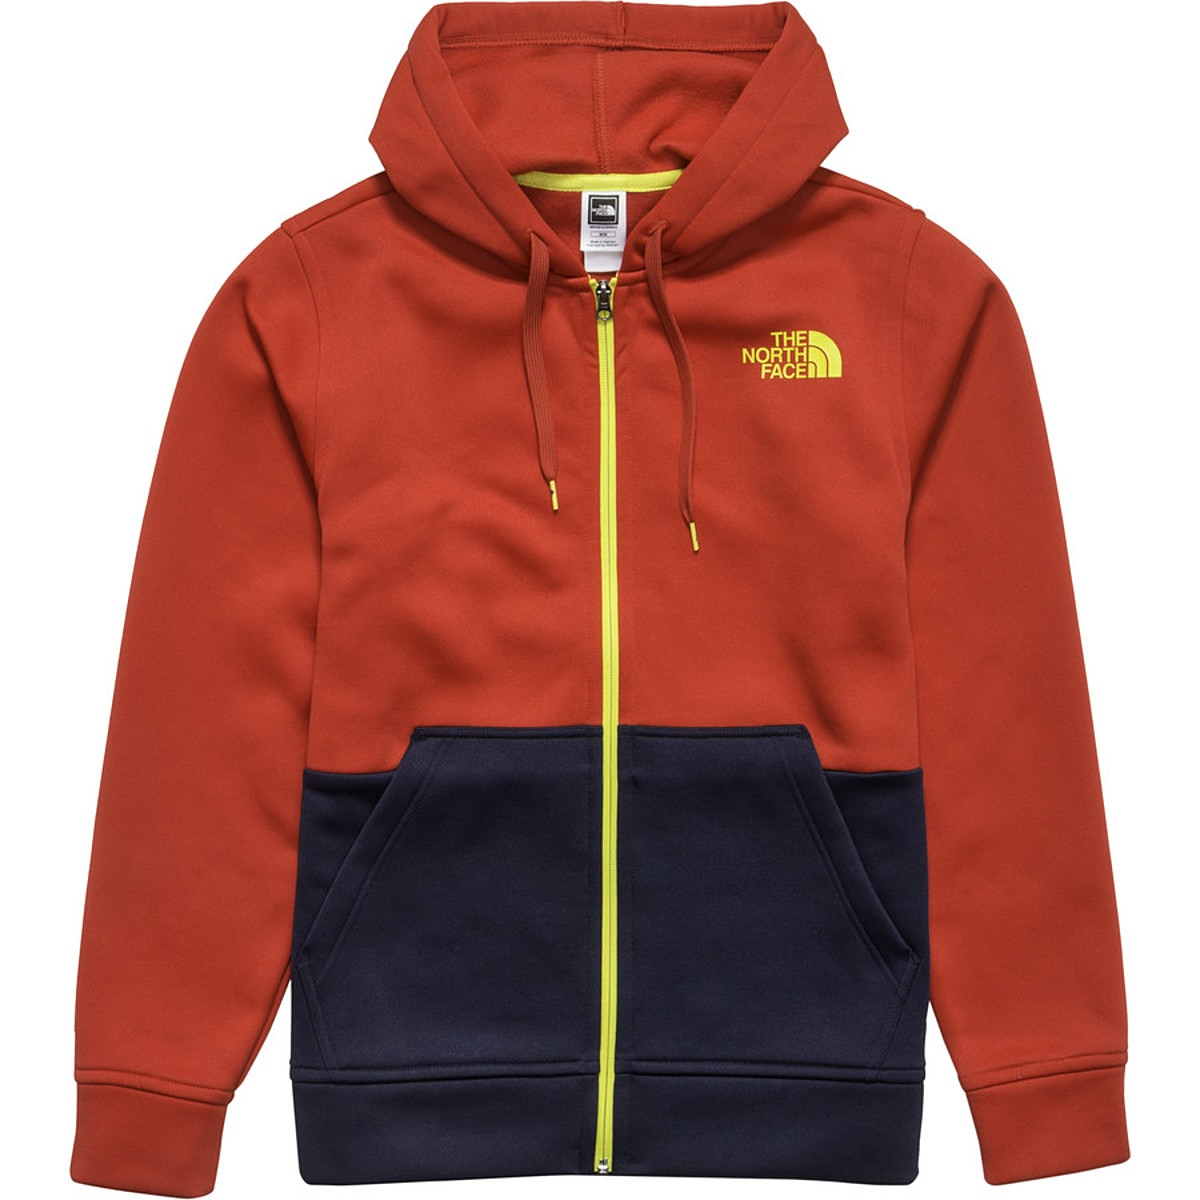 The North Face Avidor Full-Zip Hoodie